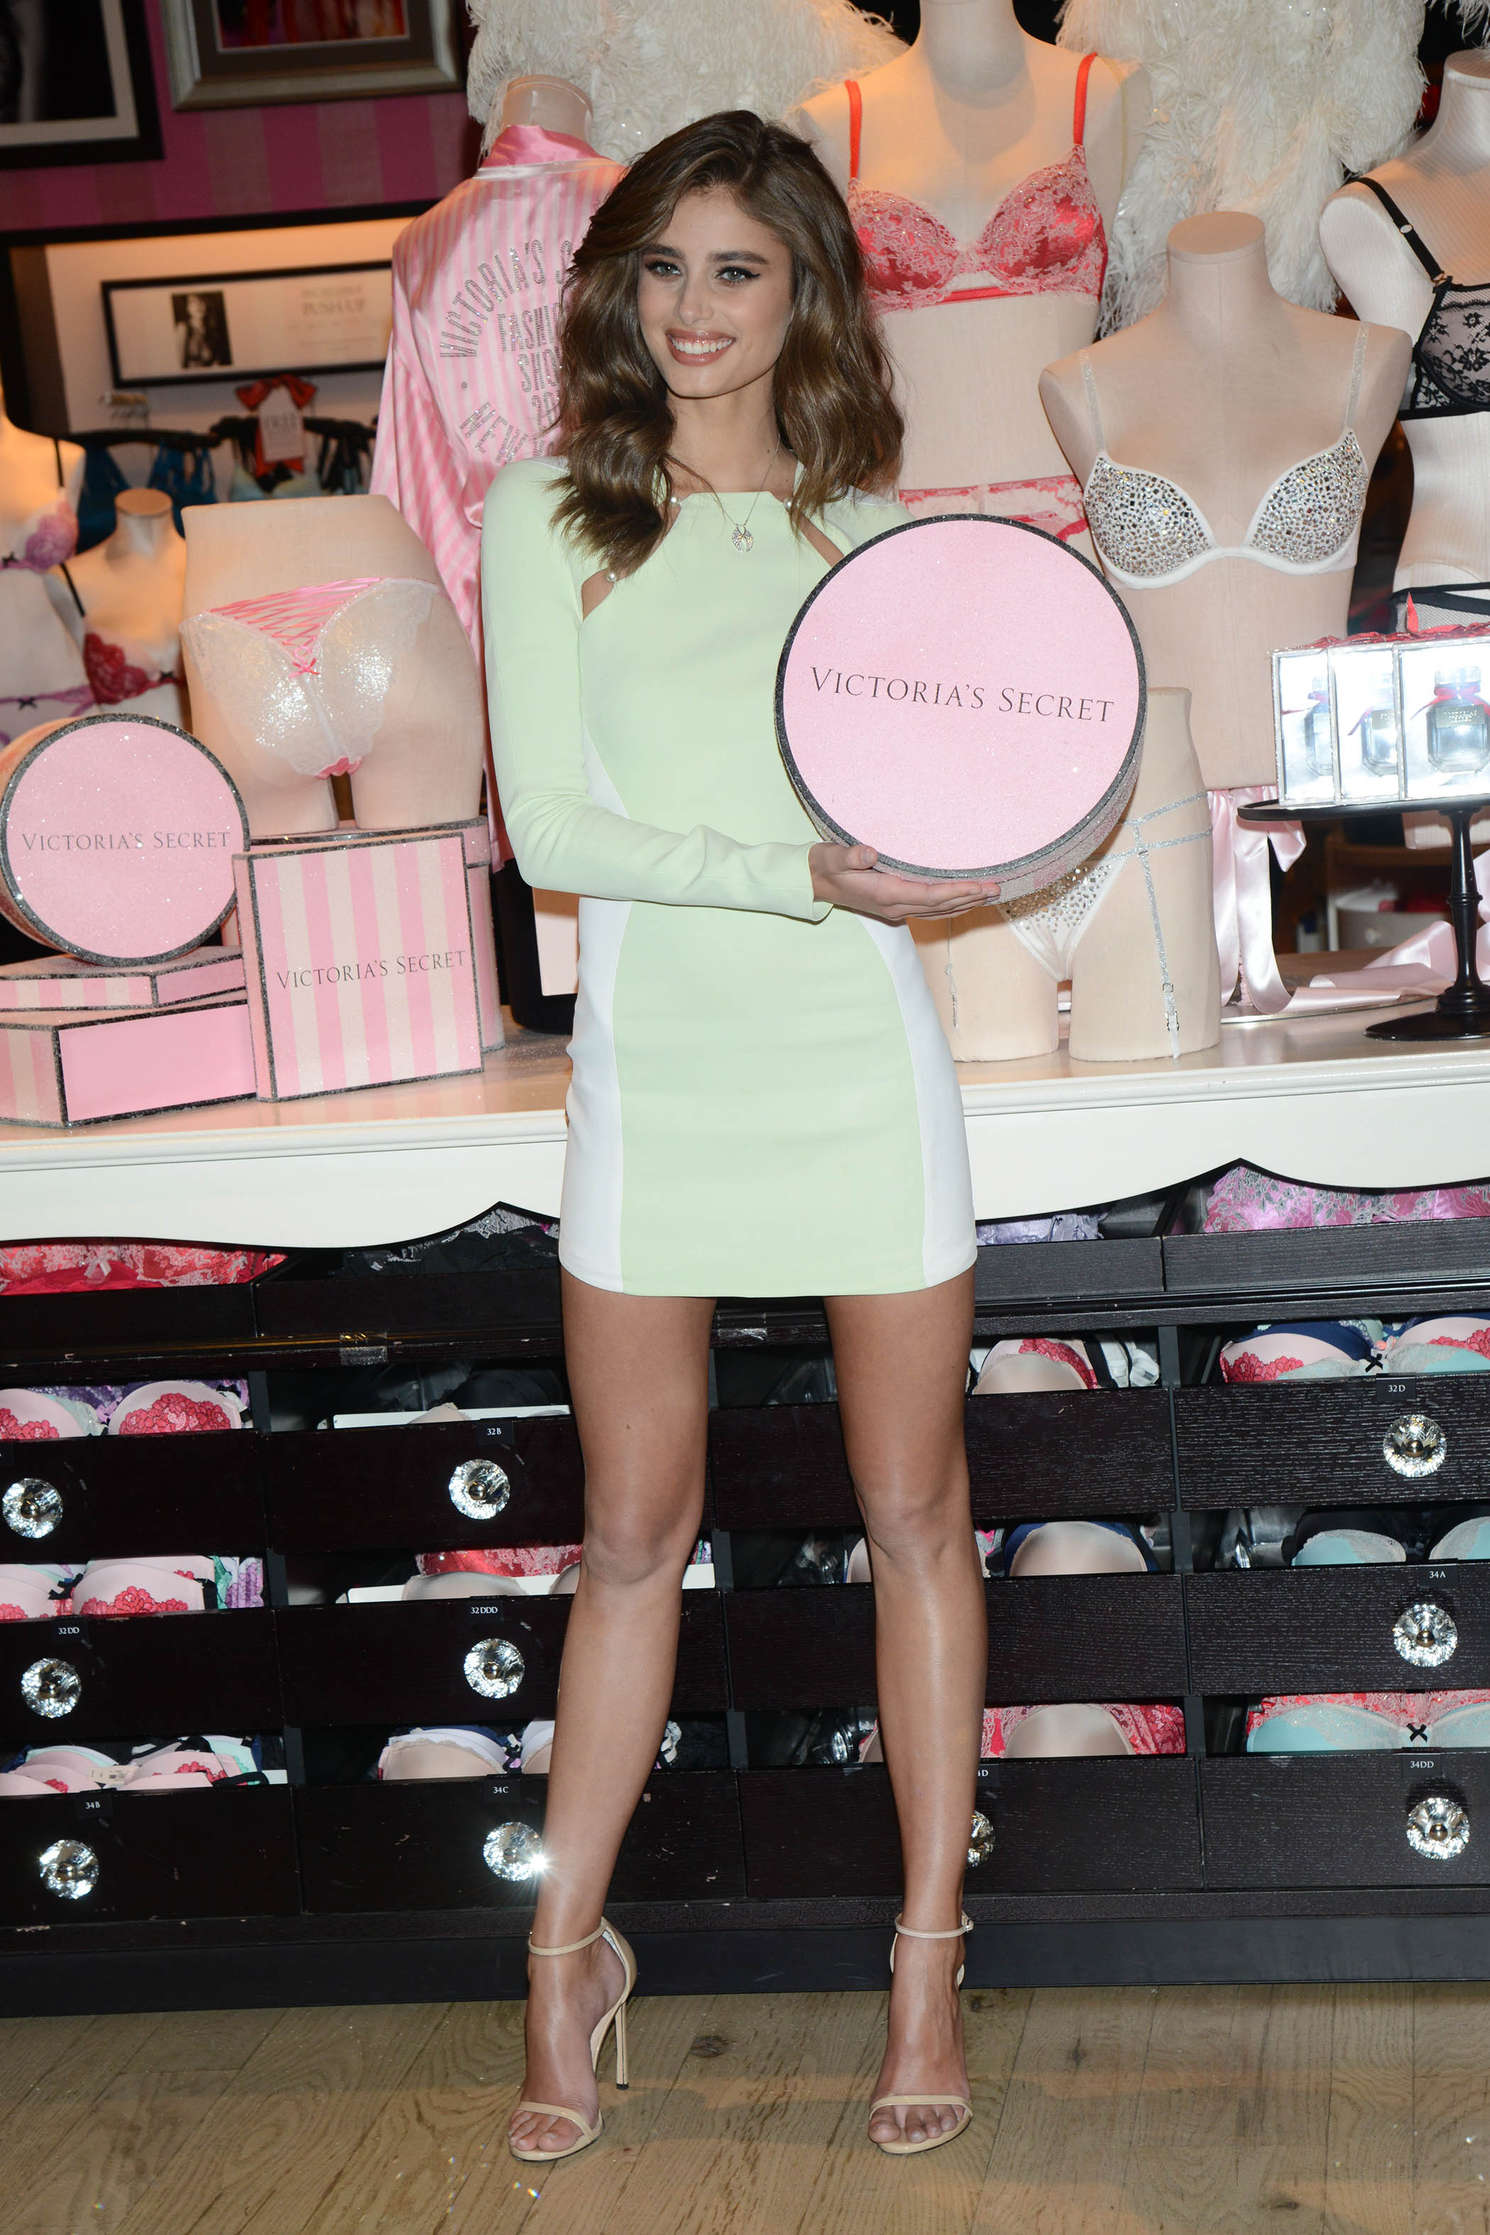 Taylor Hill 2015 : Taylor Hill: Revealing Runway Looks at Victorias Secret -22